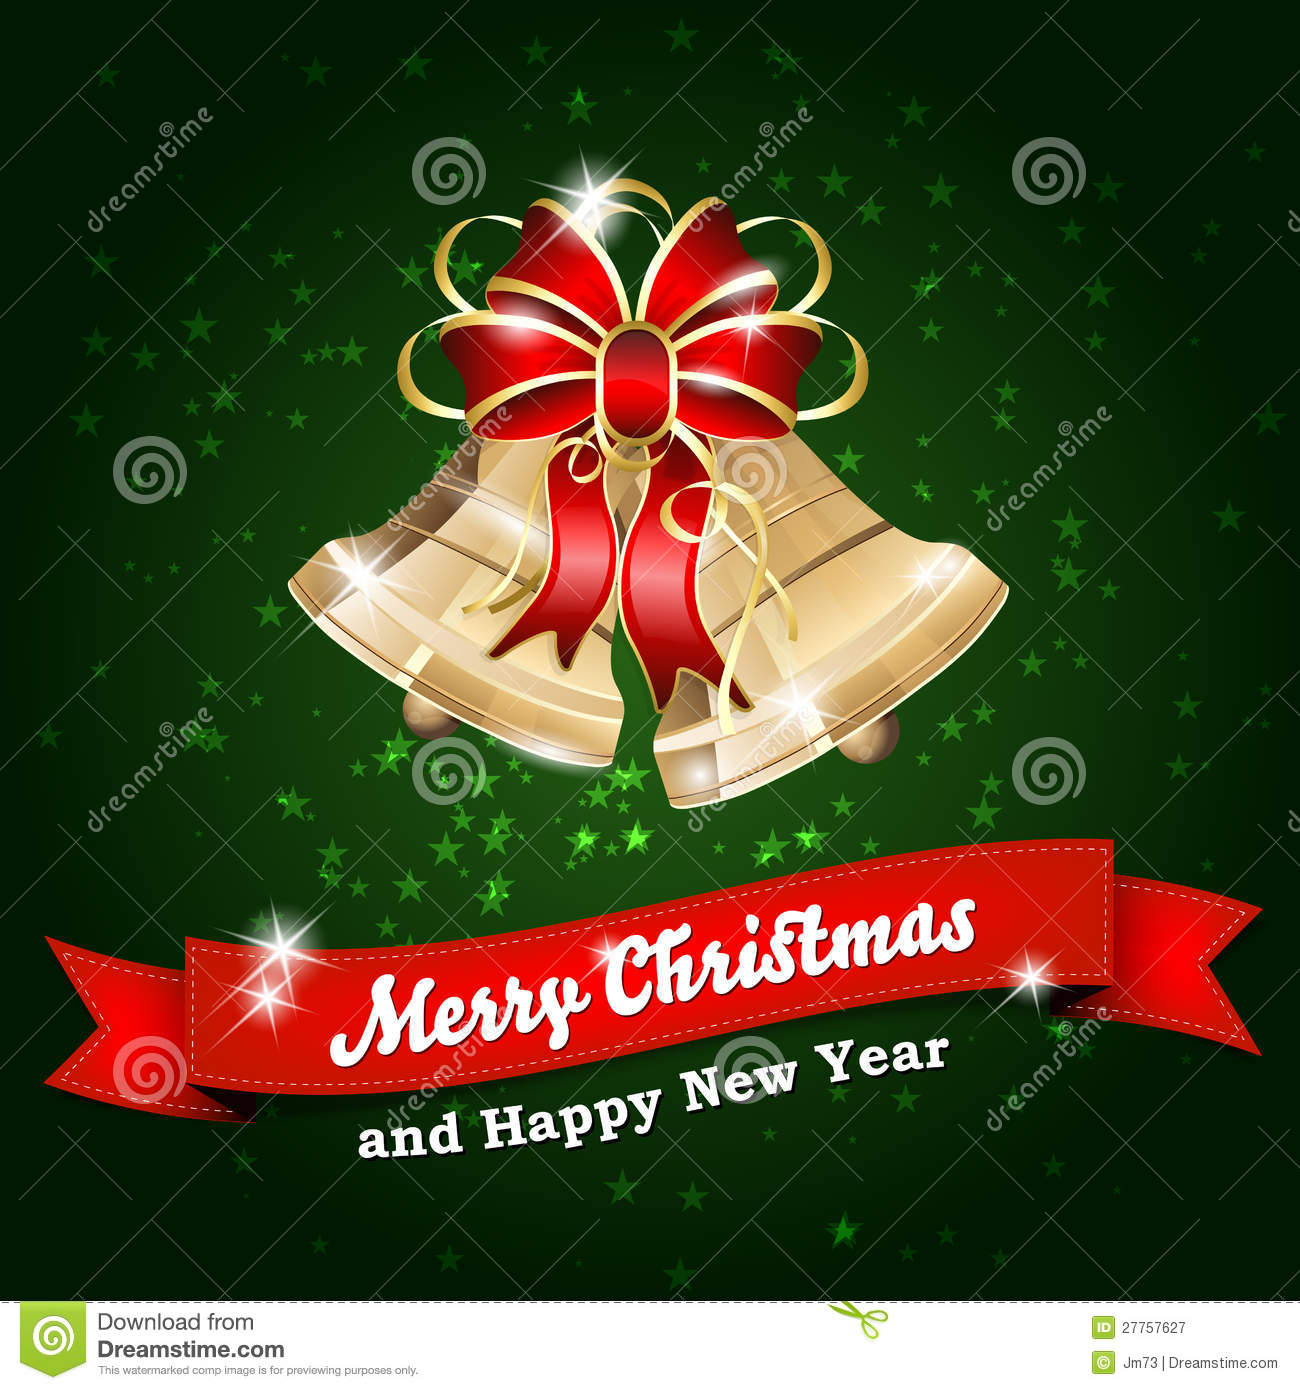 Merry Christmas And Happy New Year Background Royalty Free Stock.